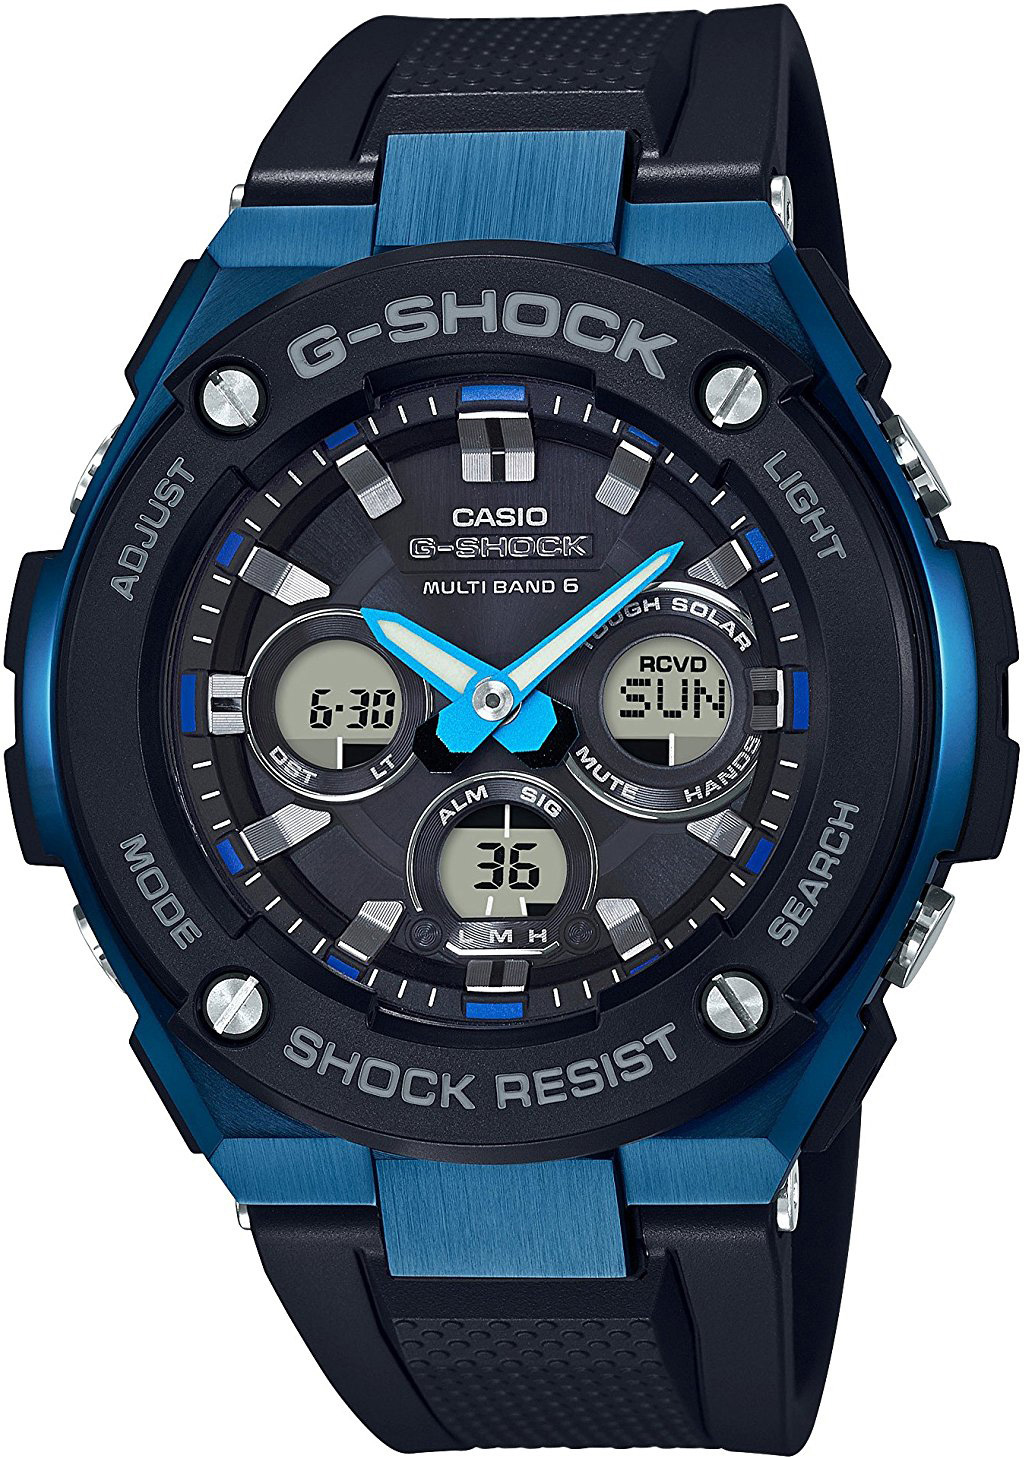 Casio G-shock G-Steel GST-W300G-1A2 цена и фото